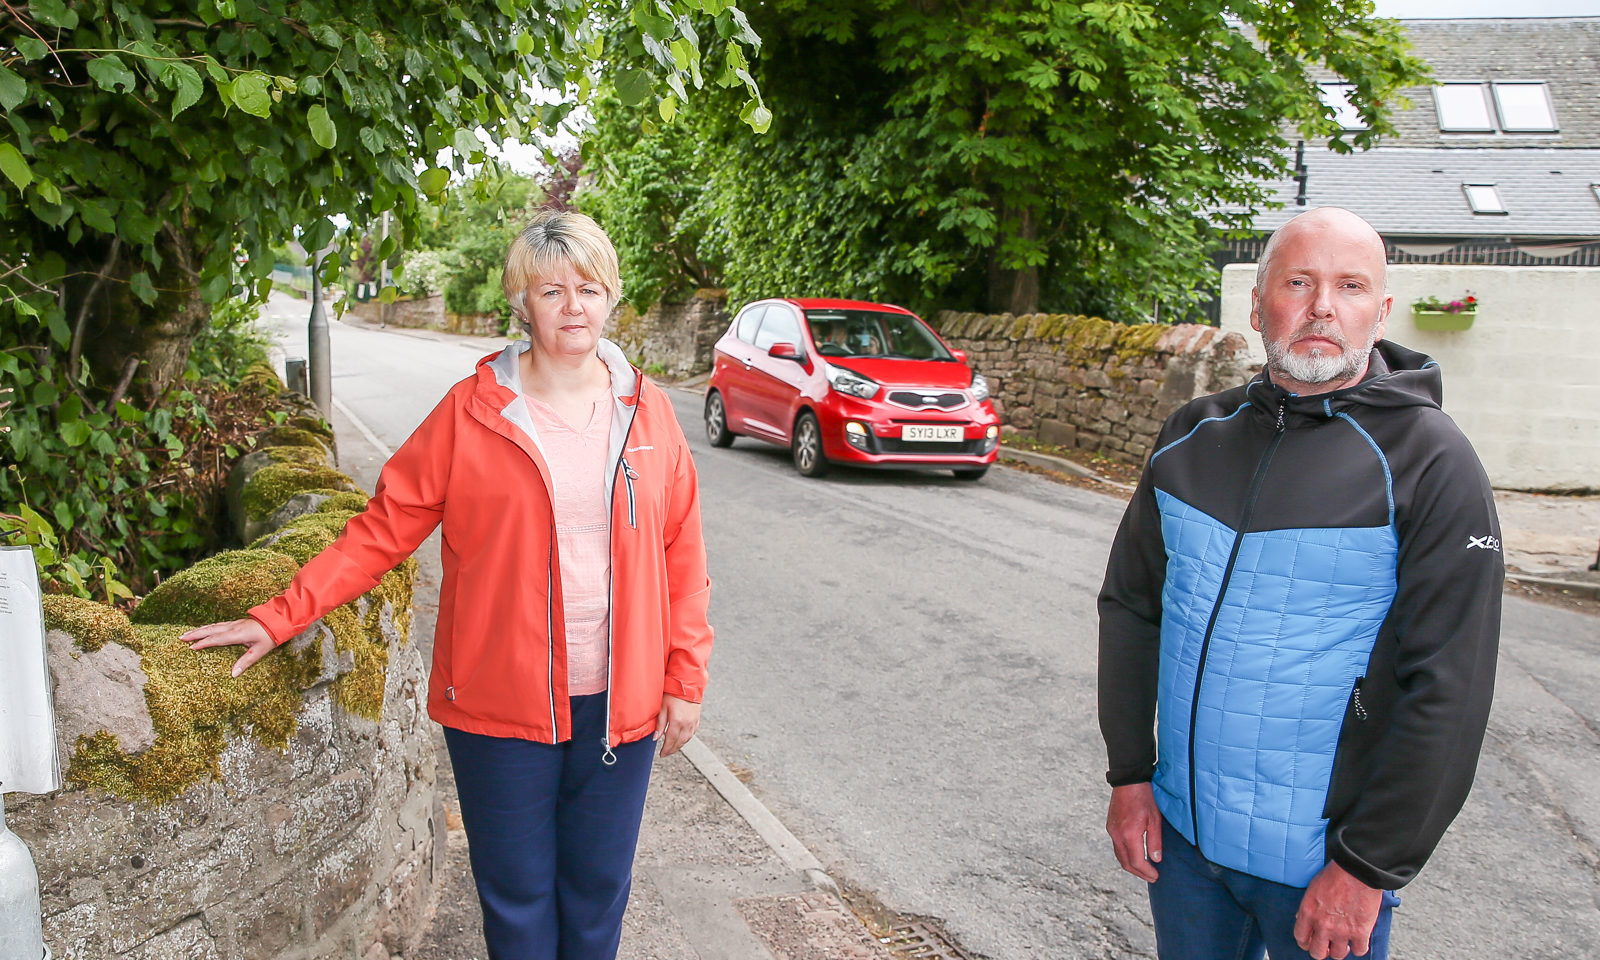 Councillors Frances MacGruer and Duncan Chisholm at the Black Isle road junction in Muir of Ord